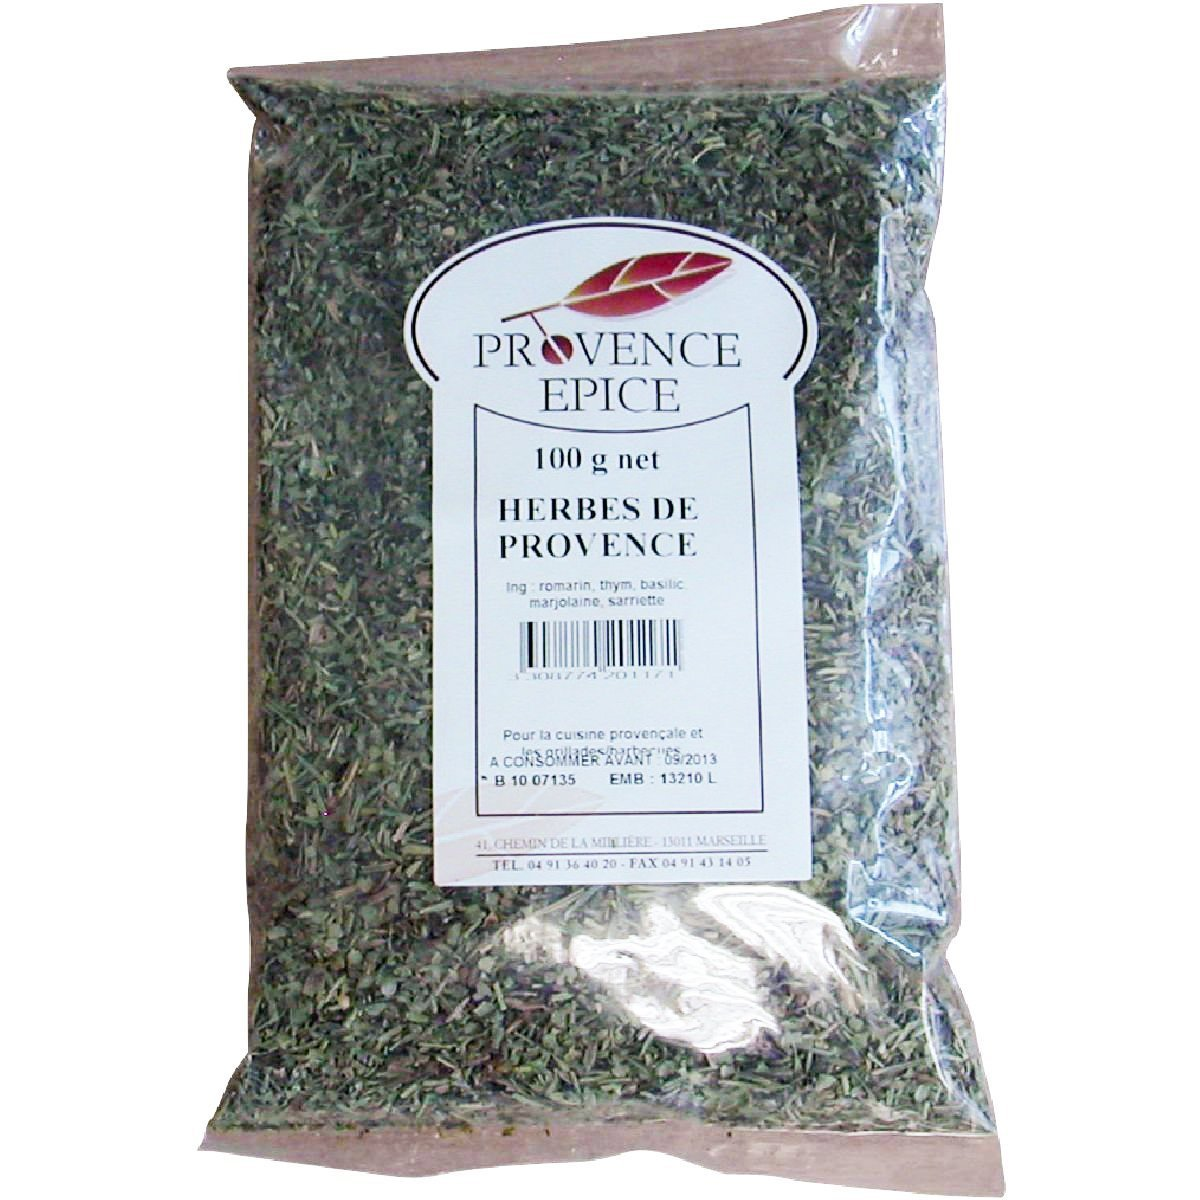 Provence Epice - Provence Herbs From France, Large Bag (3.53oz) (3 PACK)